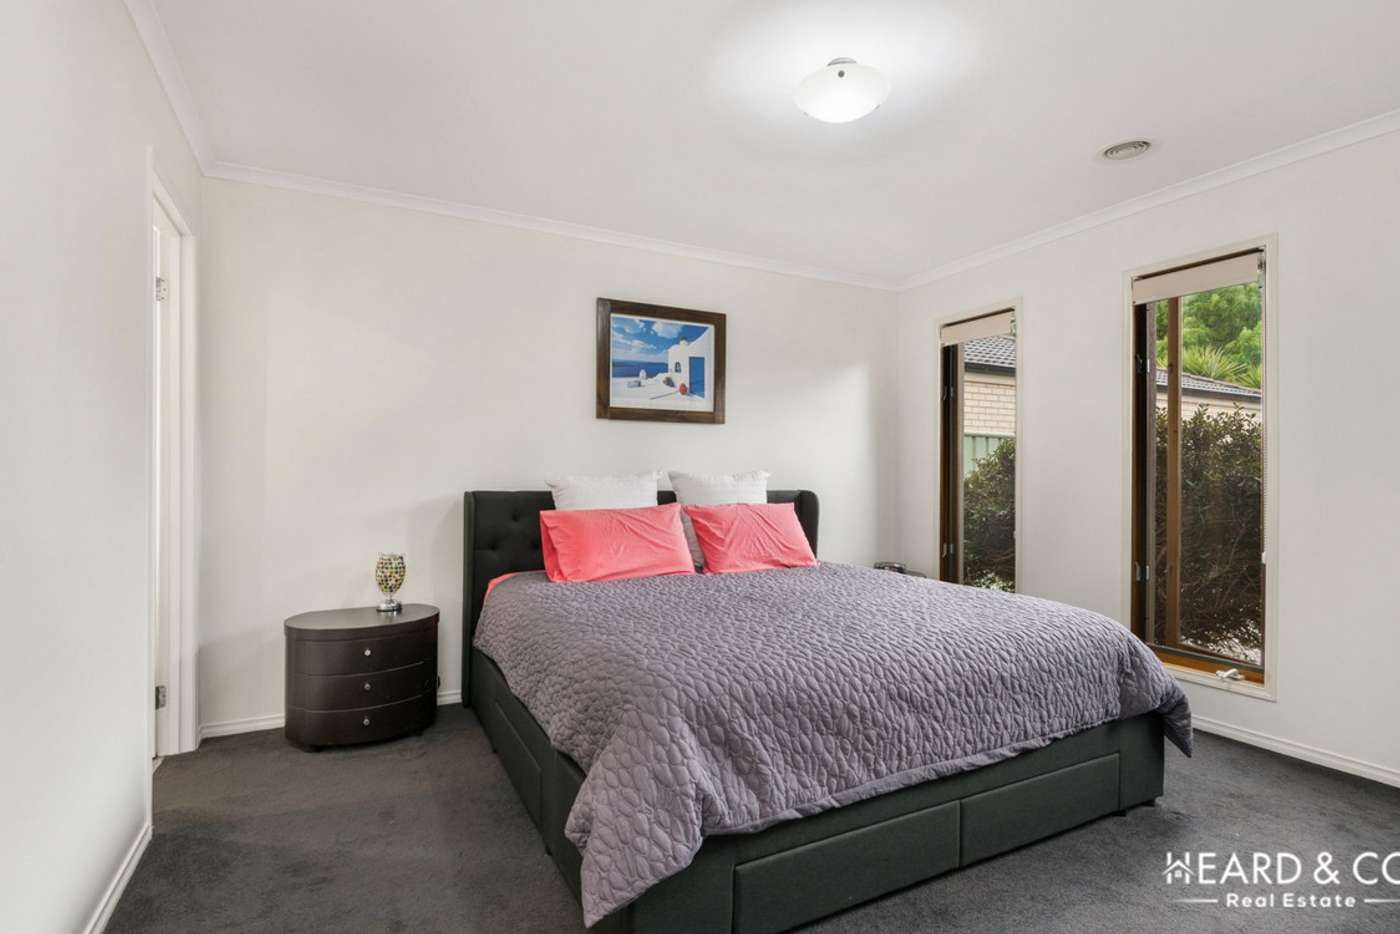 Fifth view of Homely house listing, 22 Clydebank Court, Strathfieldsaye VIC 3551